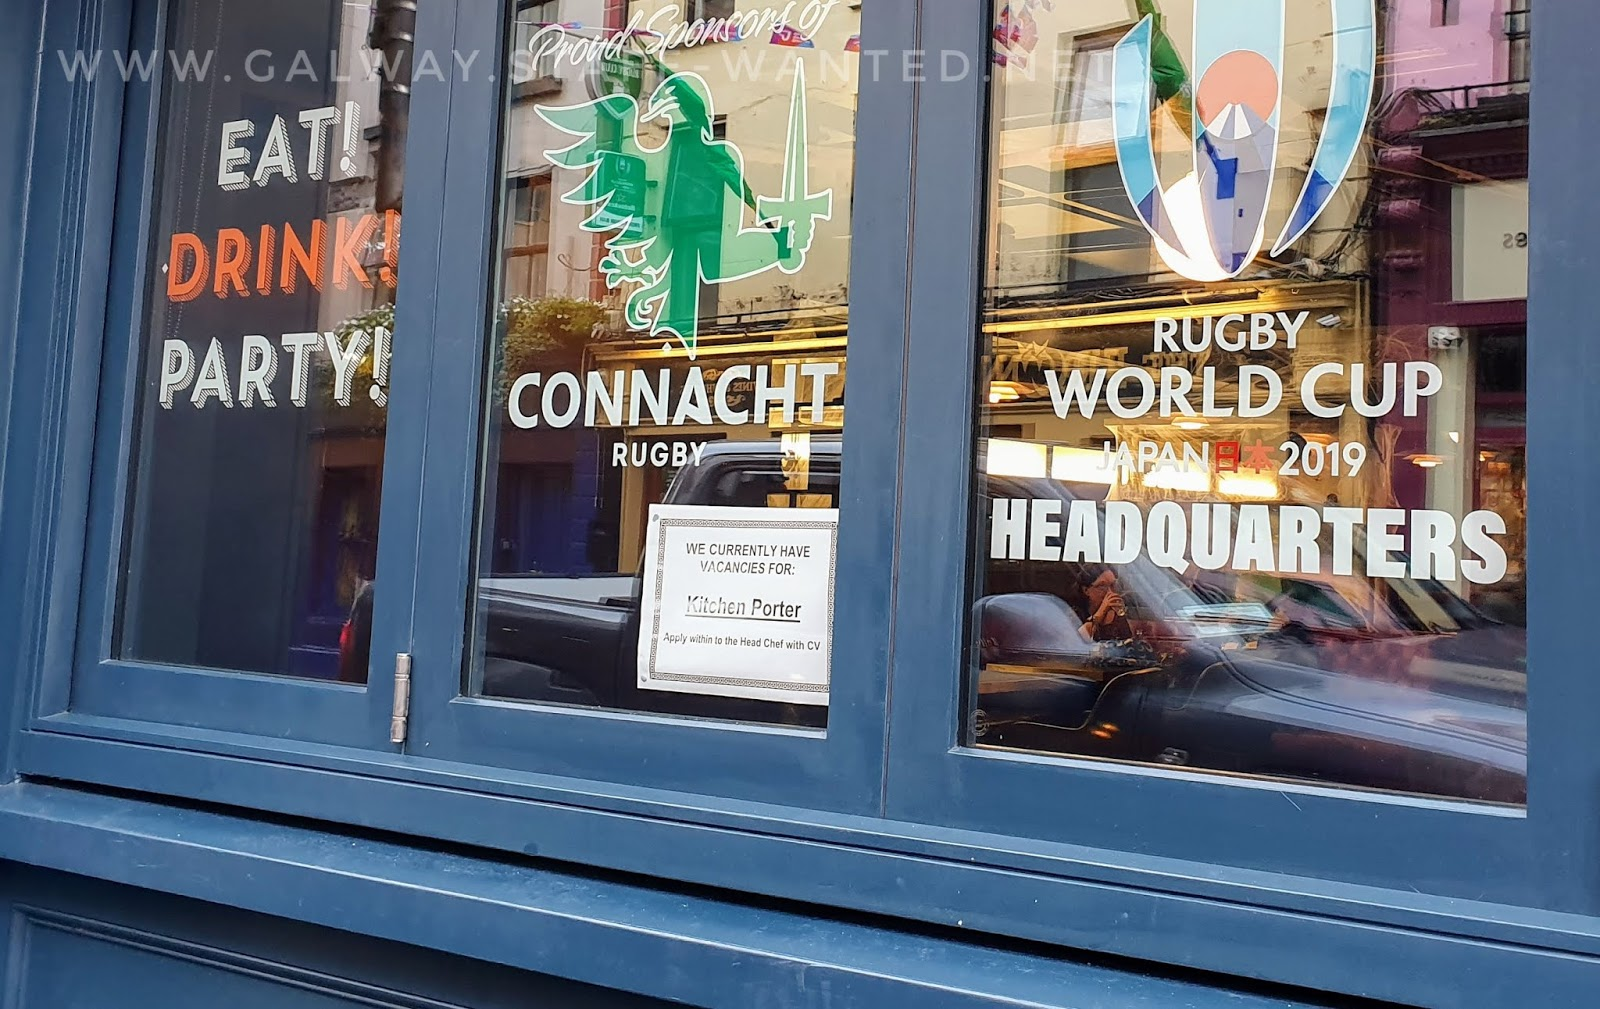 Busker Browne's window - Galway Ireland rugby World cup 2019 headquarters